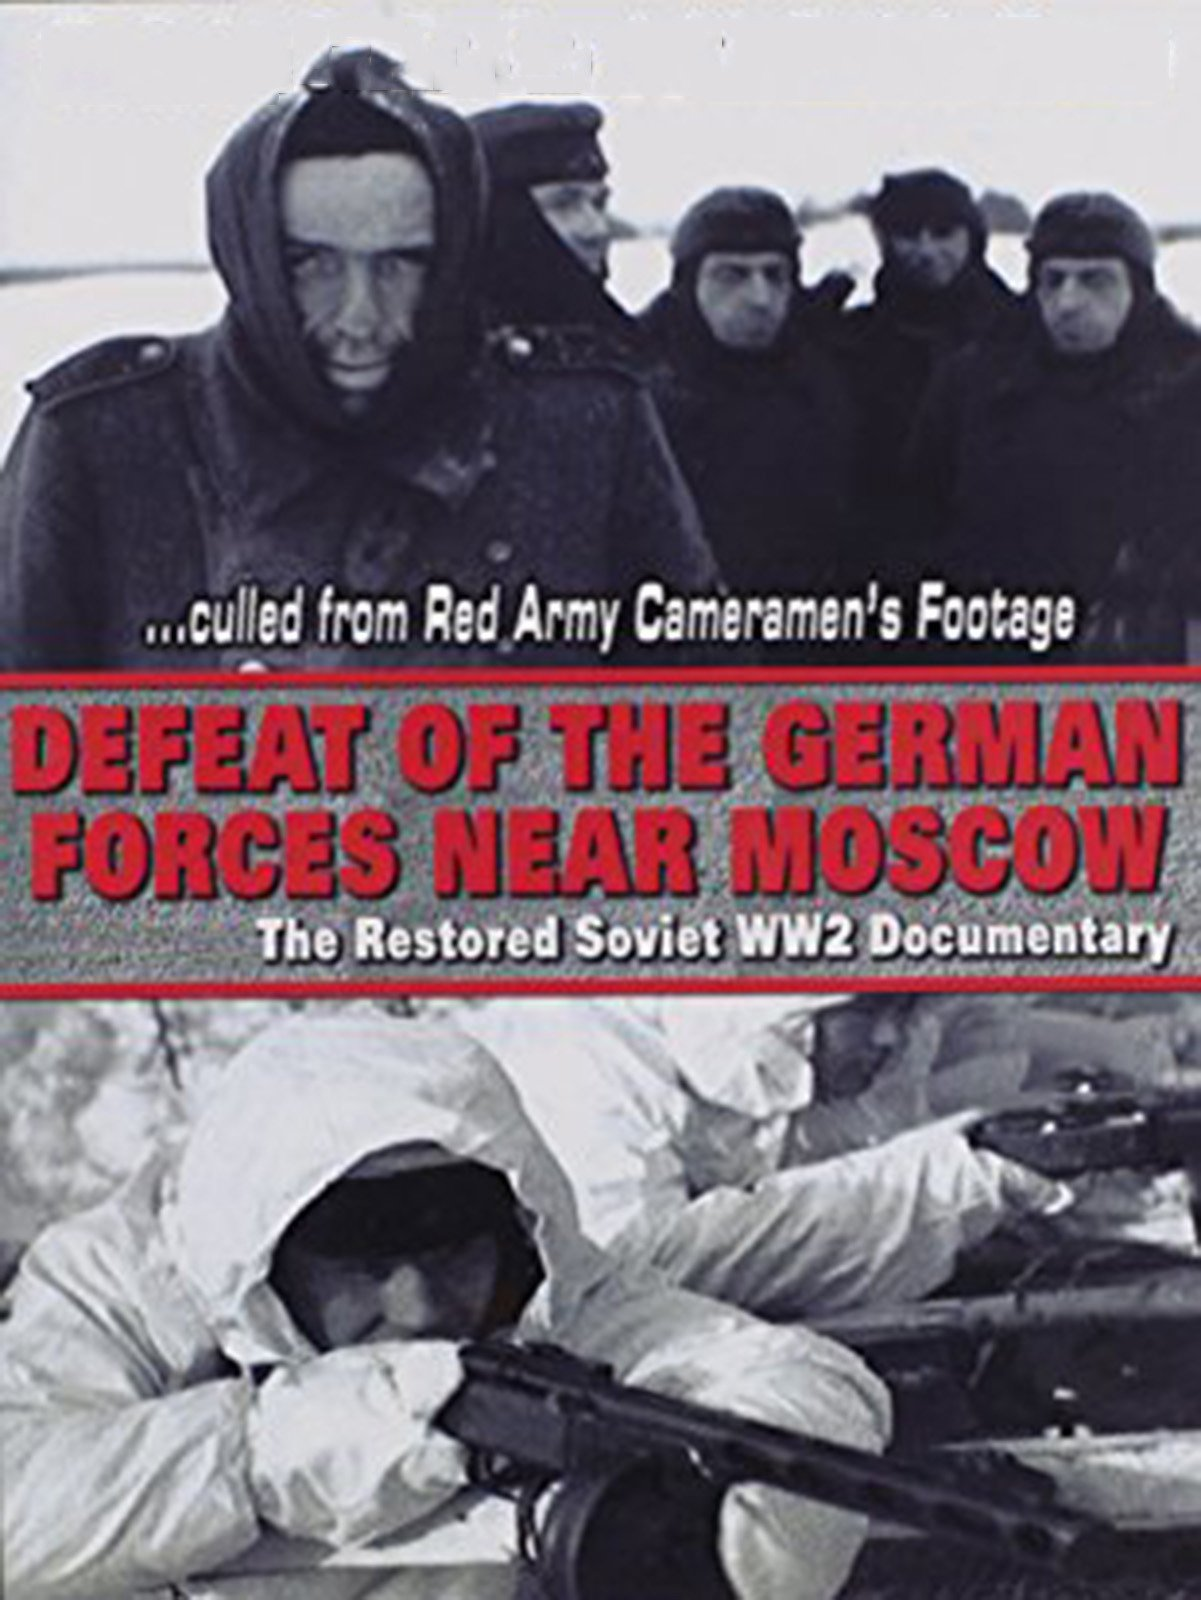 Defeat of the German Forces Near Moscow: The Restored Soviet WW2 Documentary